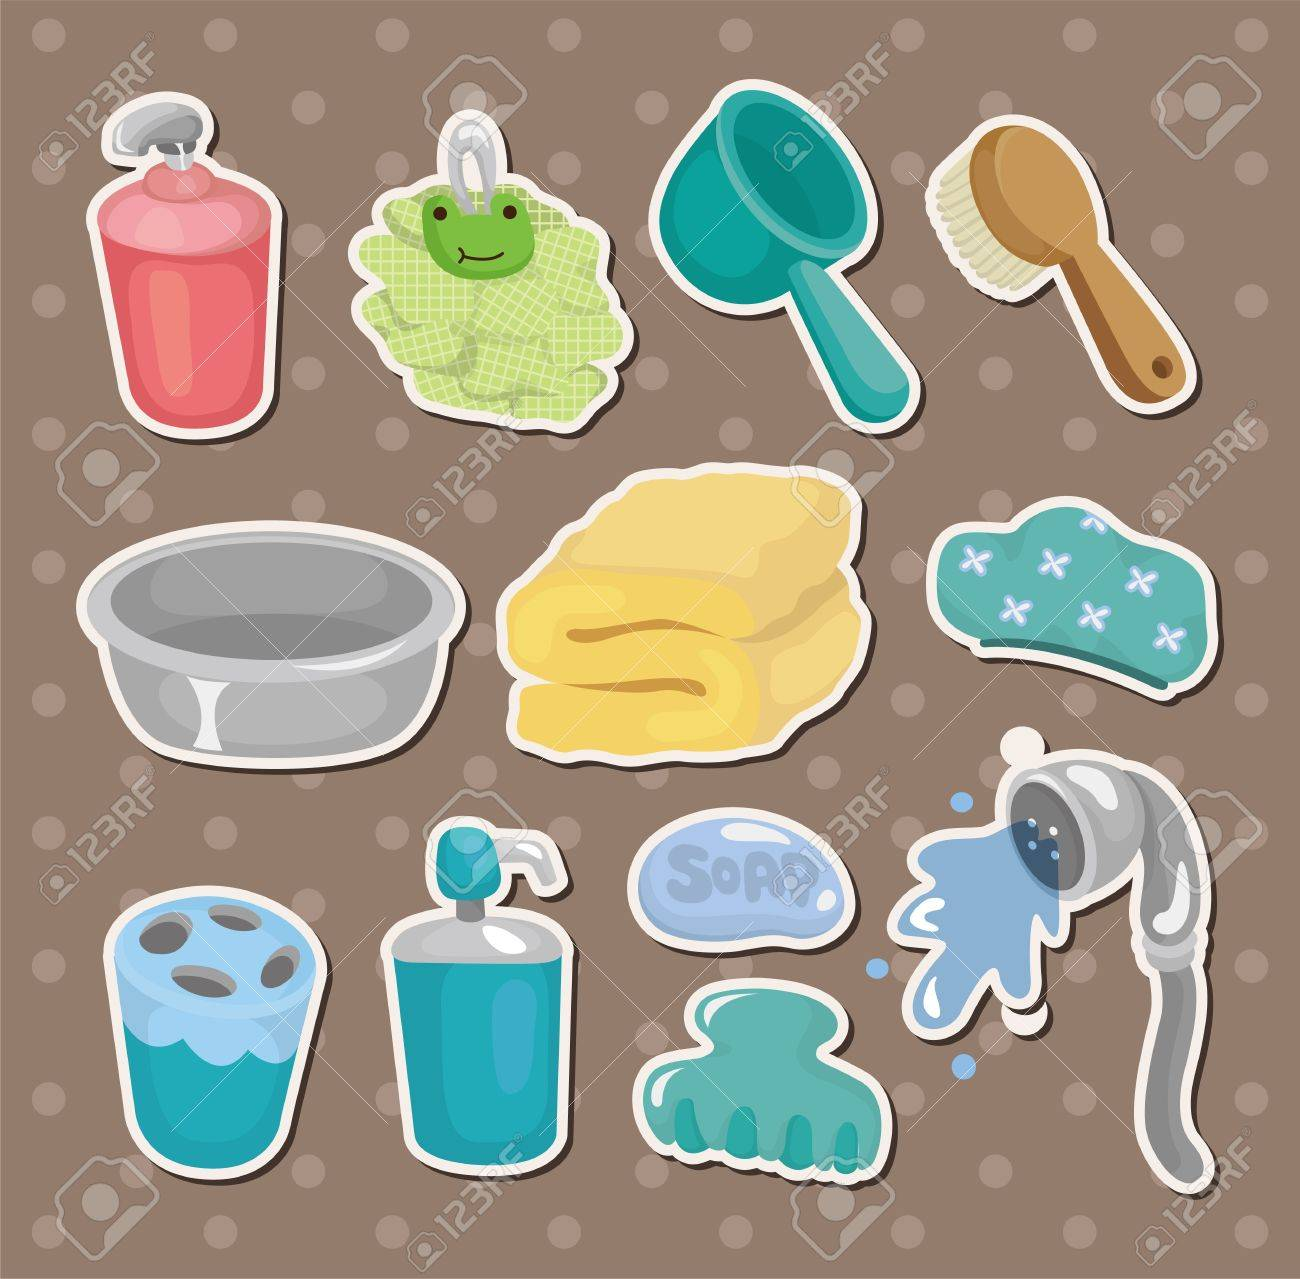 Cartoon Bathroom Equipment Stickers Royalty Free Cliparts Vectors